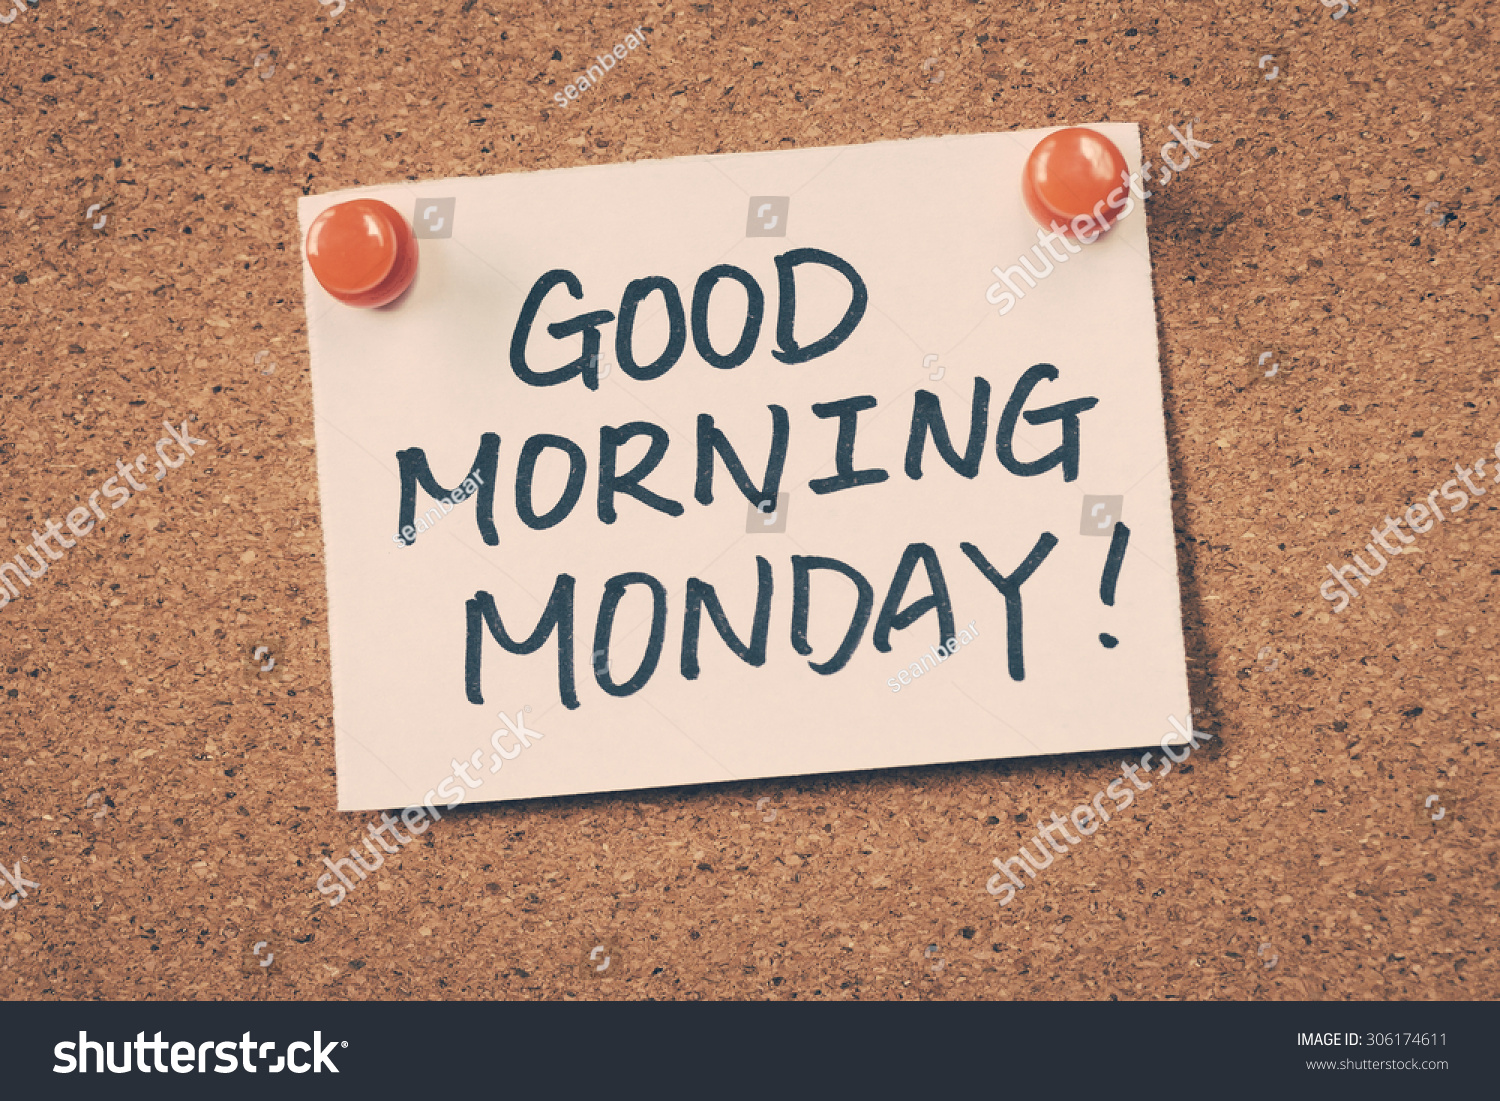 Good Morning Monday In French : Good morning monday stock photo shutterstock